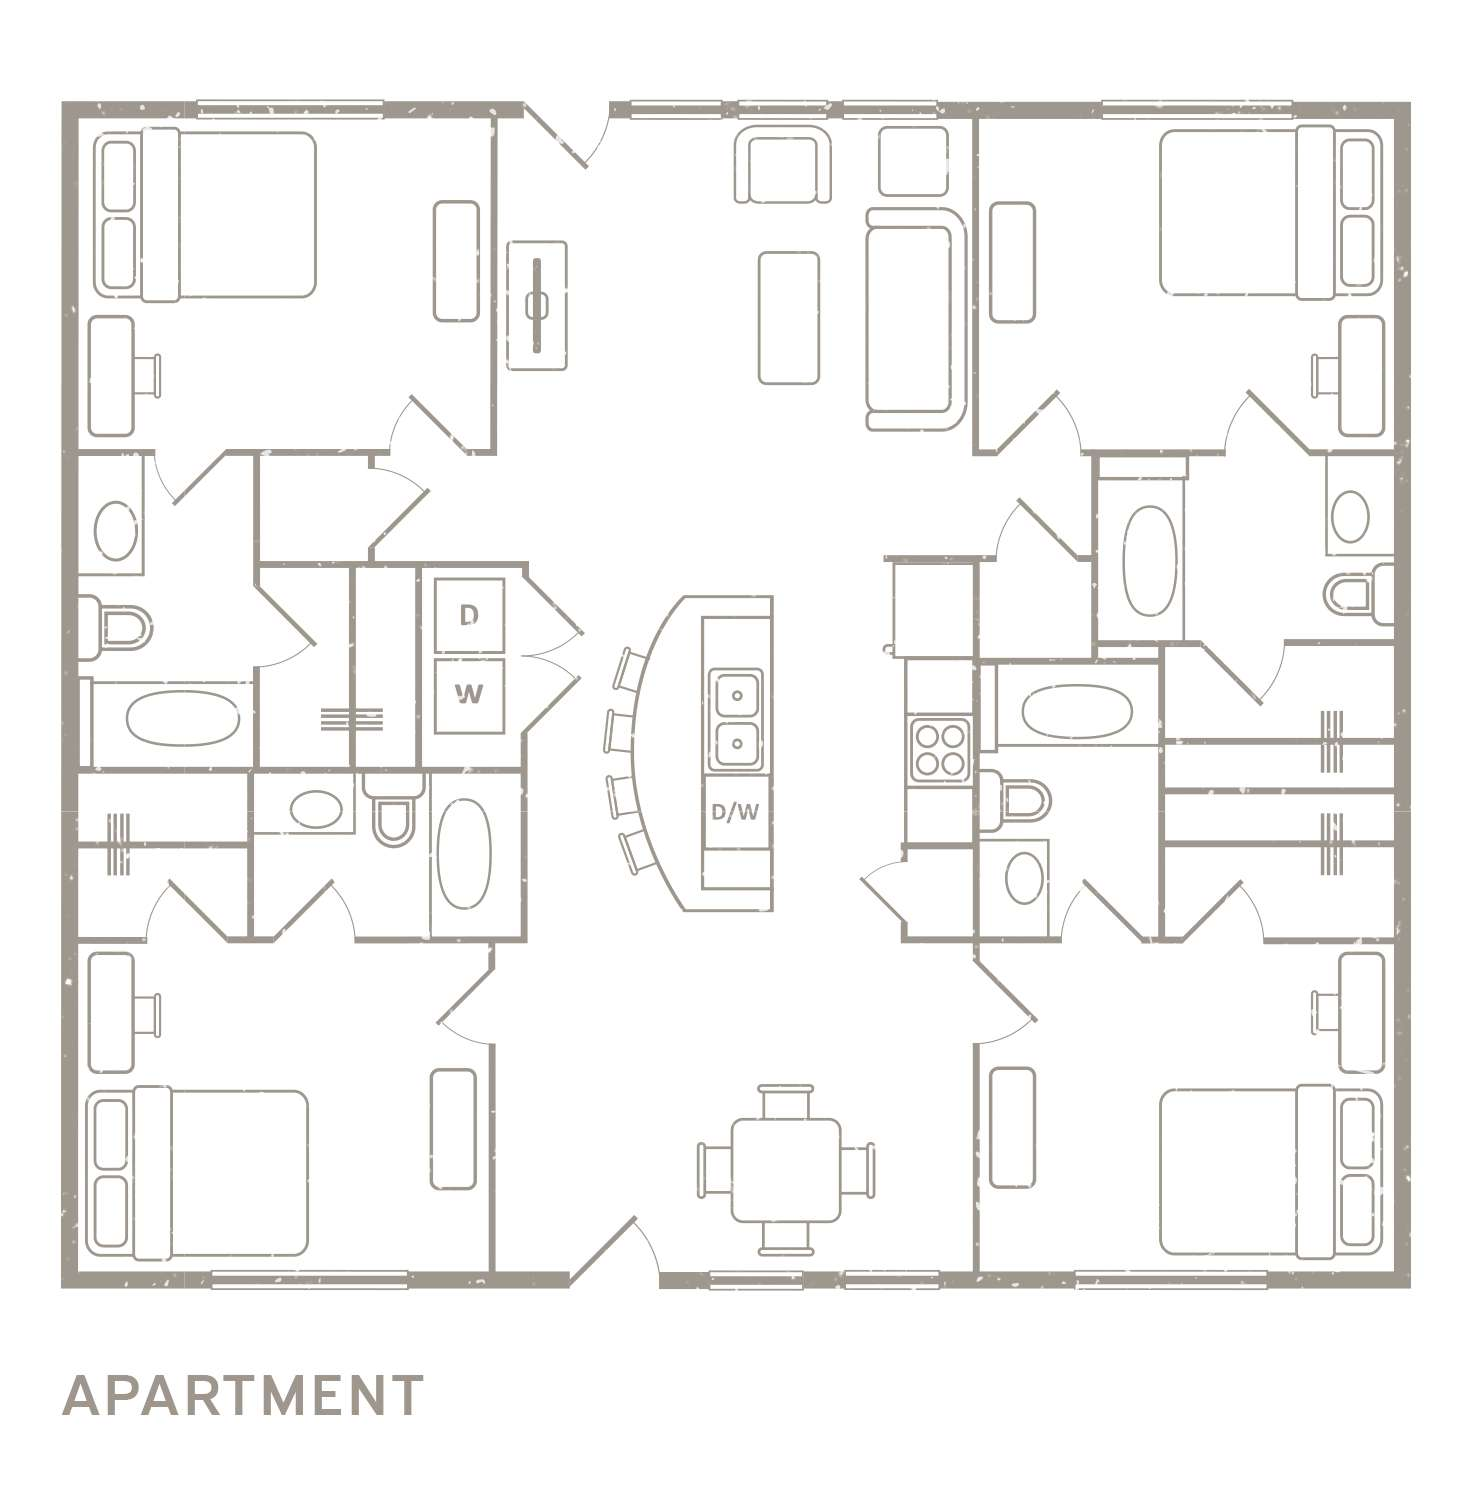 4 Bedroom Floorplan